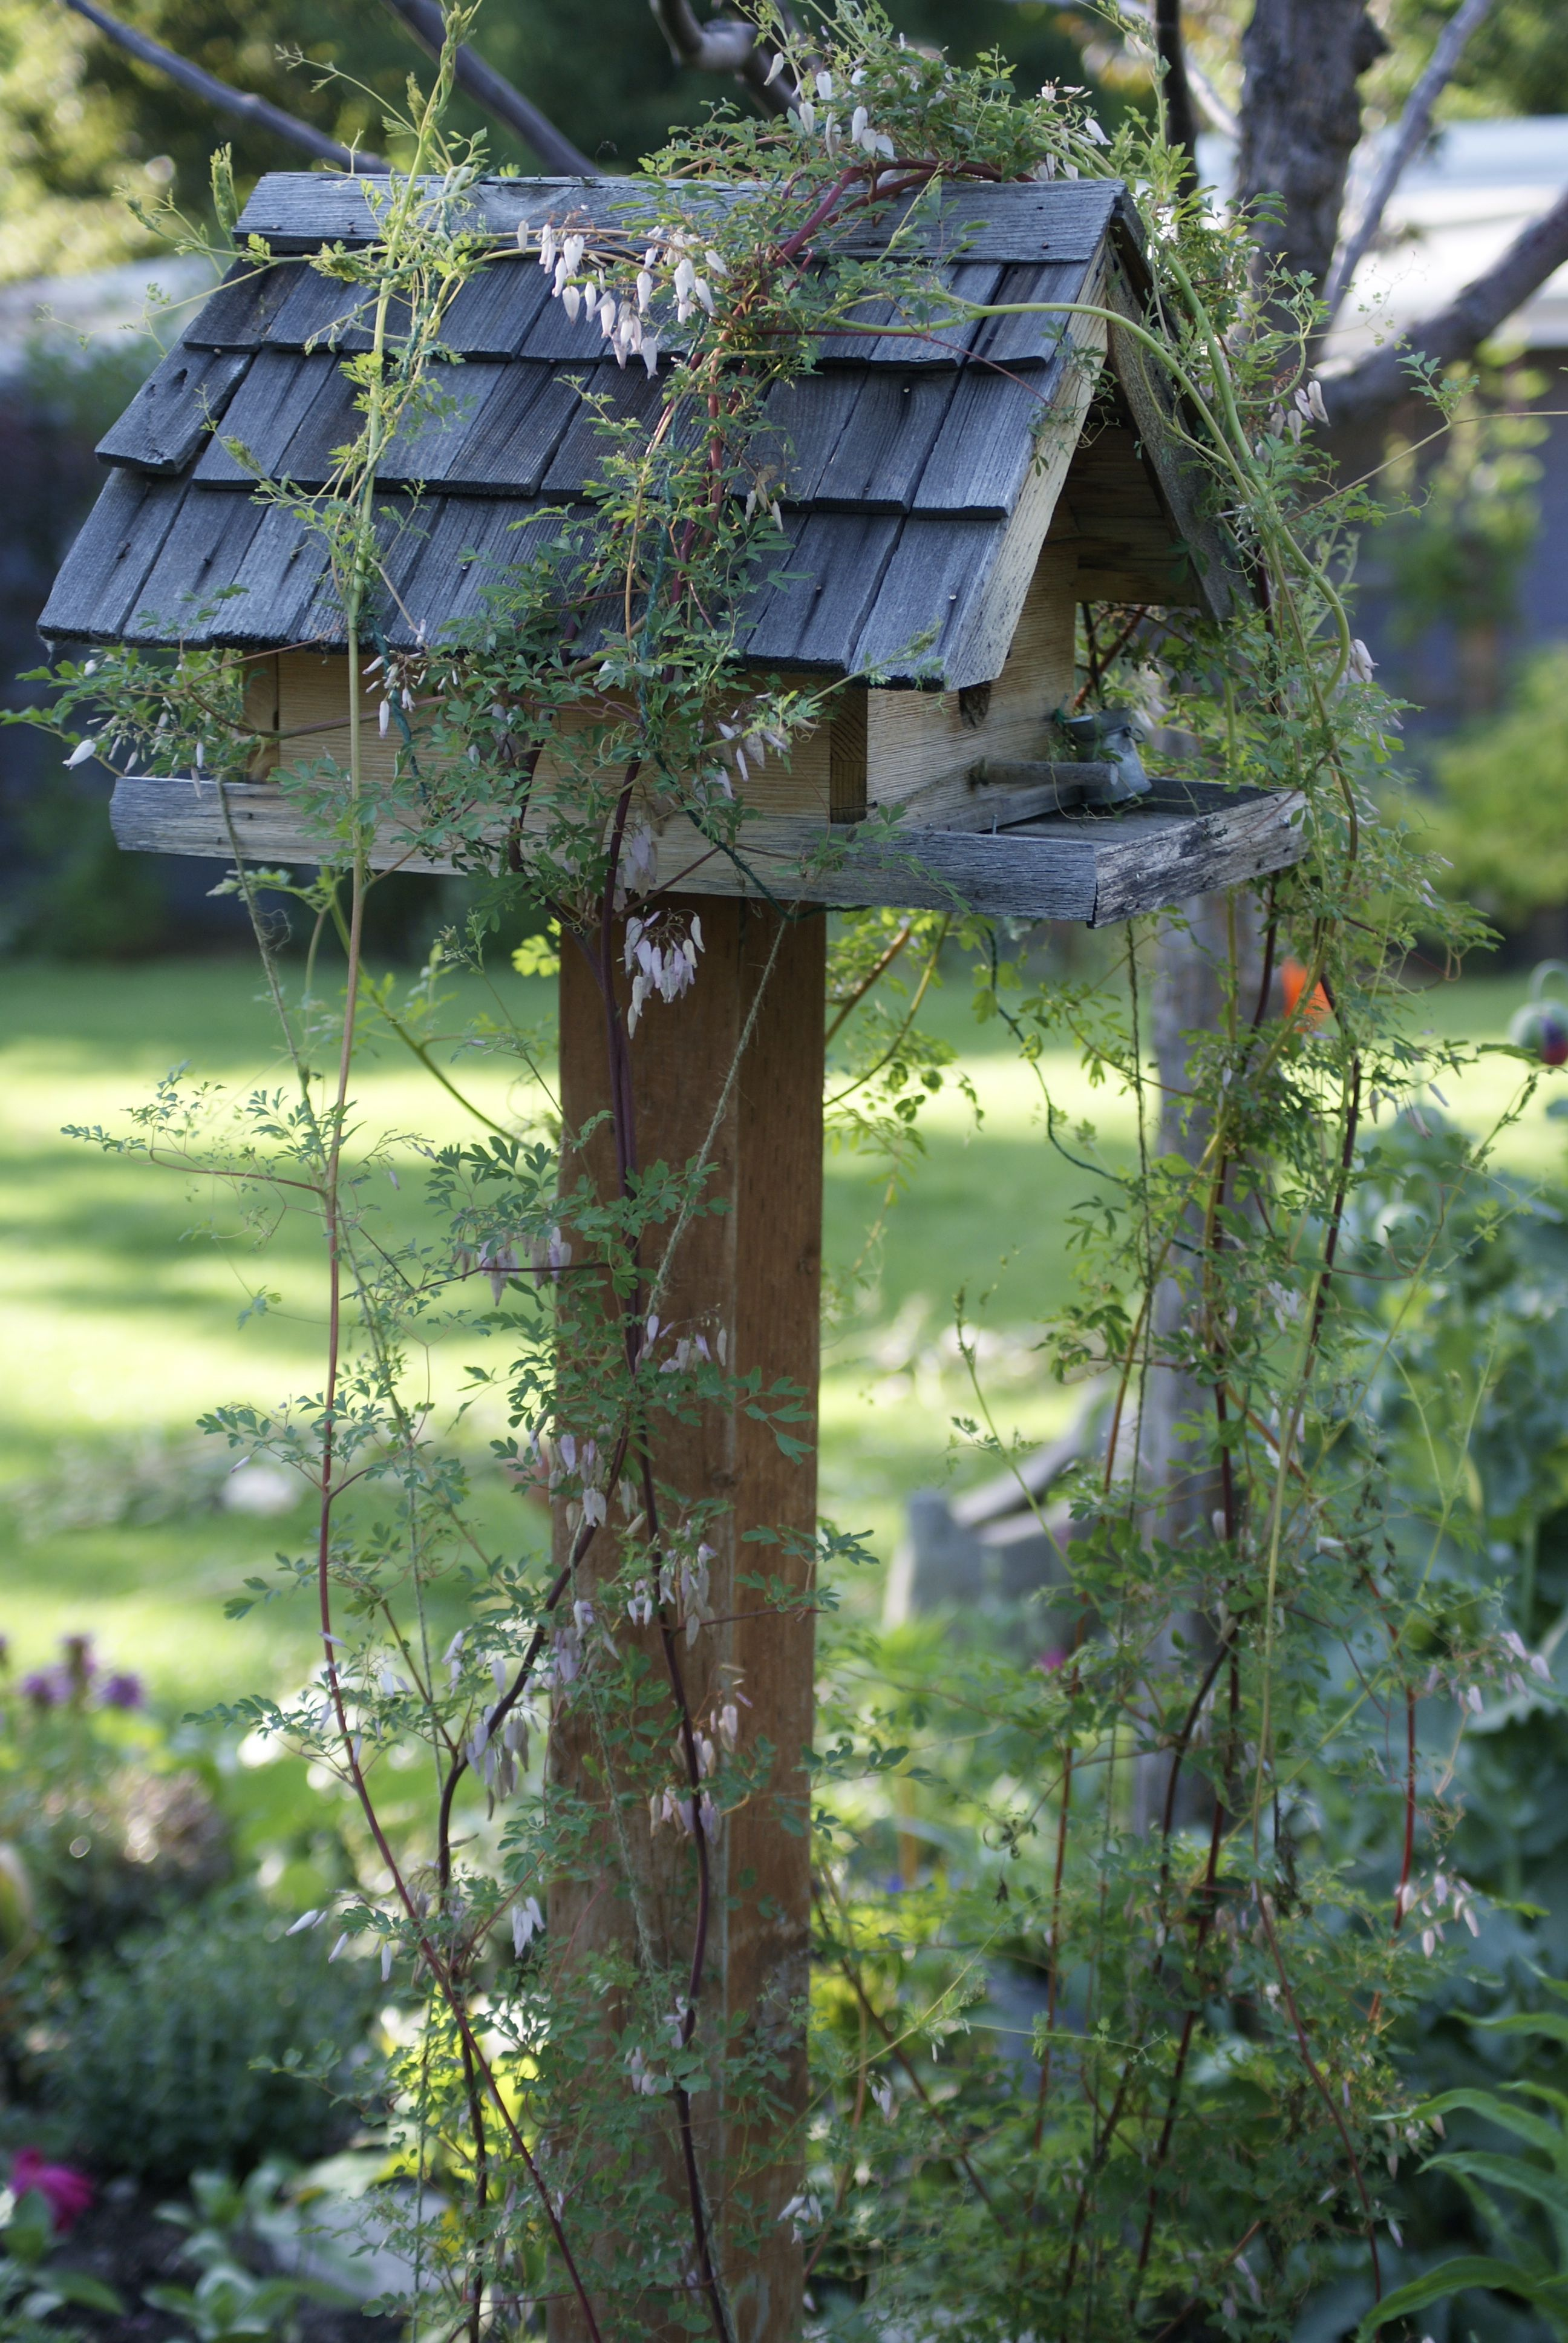 Looks like an Ivy birdhouse for the chirping buddies. I love listening to their song in the early mornings... sipping tea. It is, by far, my favorite time of the day. When the day is just awakening with exciting possibilities. Everything in that moment is so peaceful.